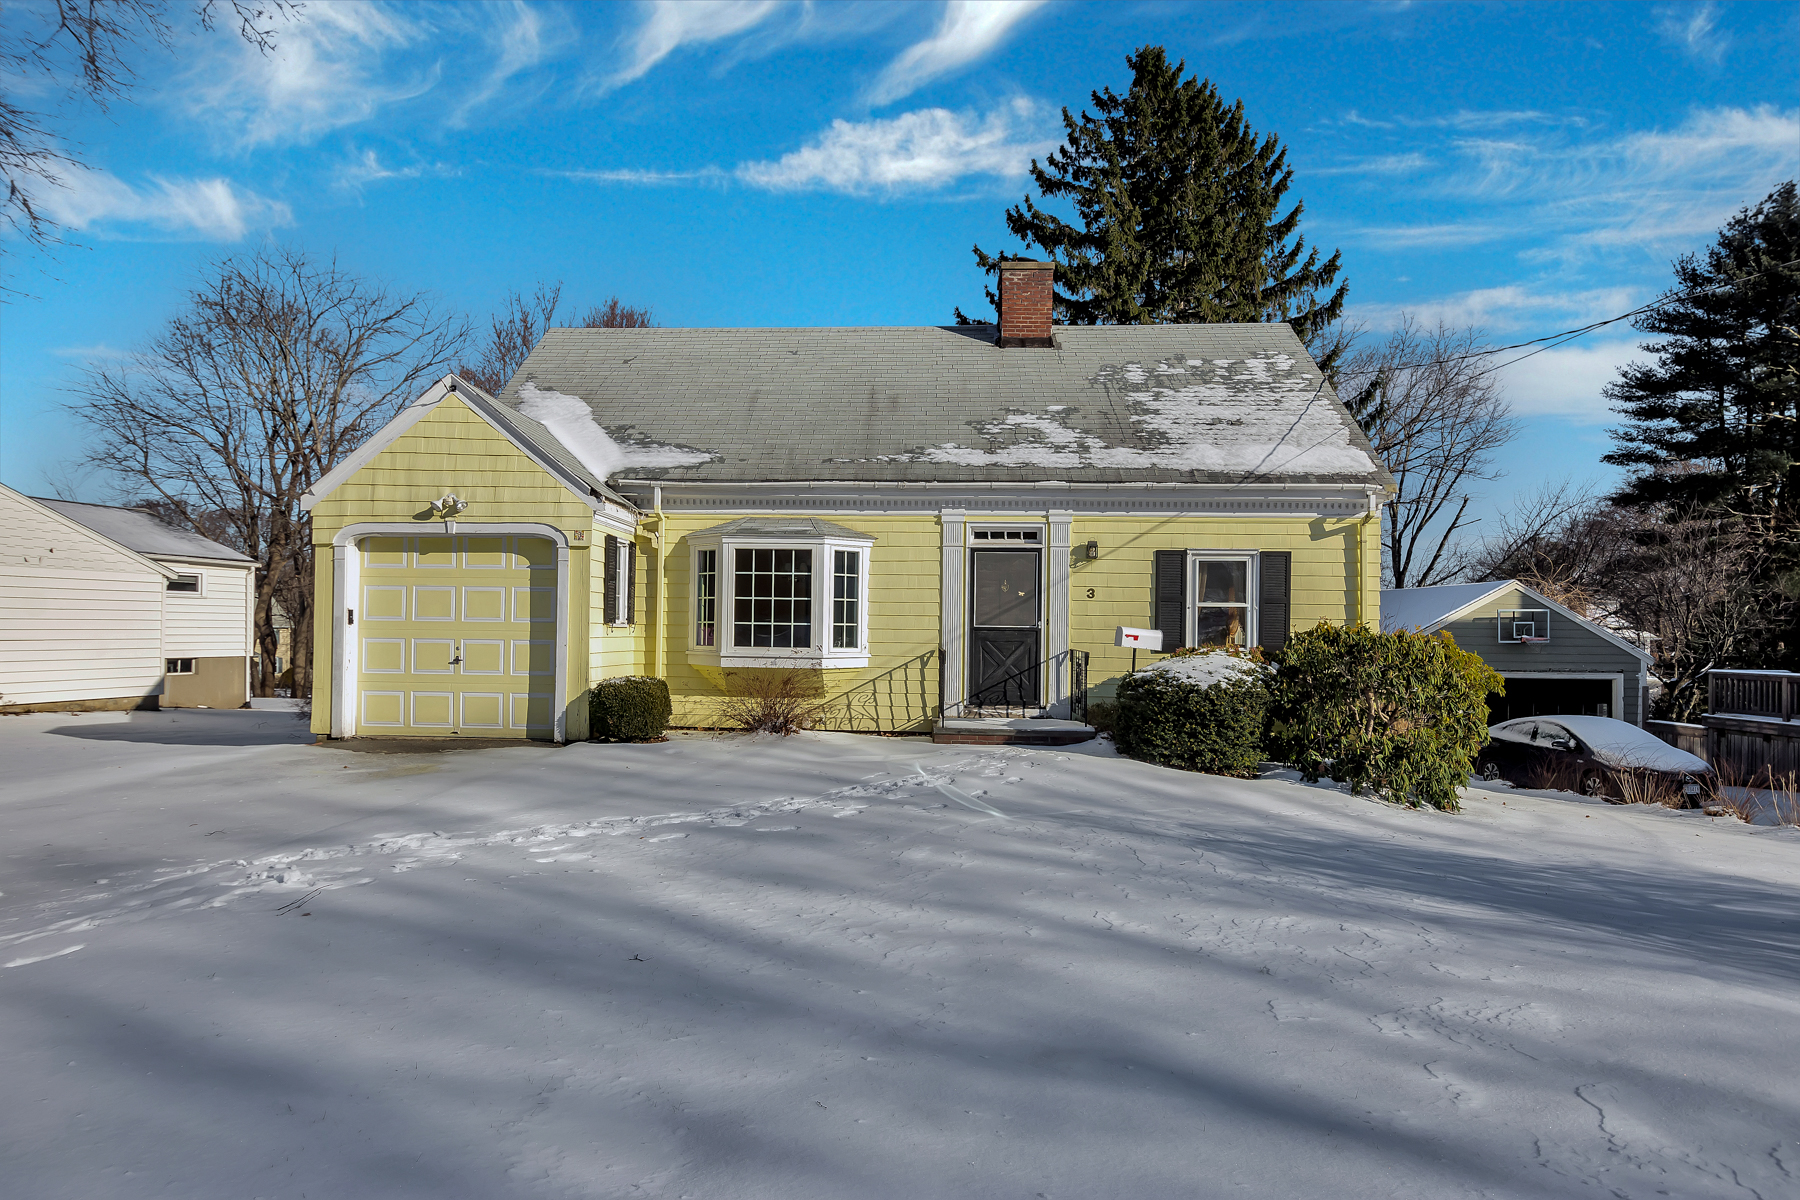 Single Family Homes for Sale at Classic Cape in Ambrose School District 3 Indian Hill Road Winchester, Massachusetts 01890 United States